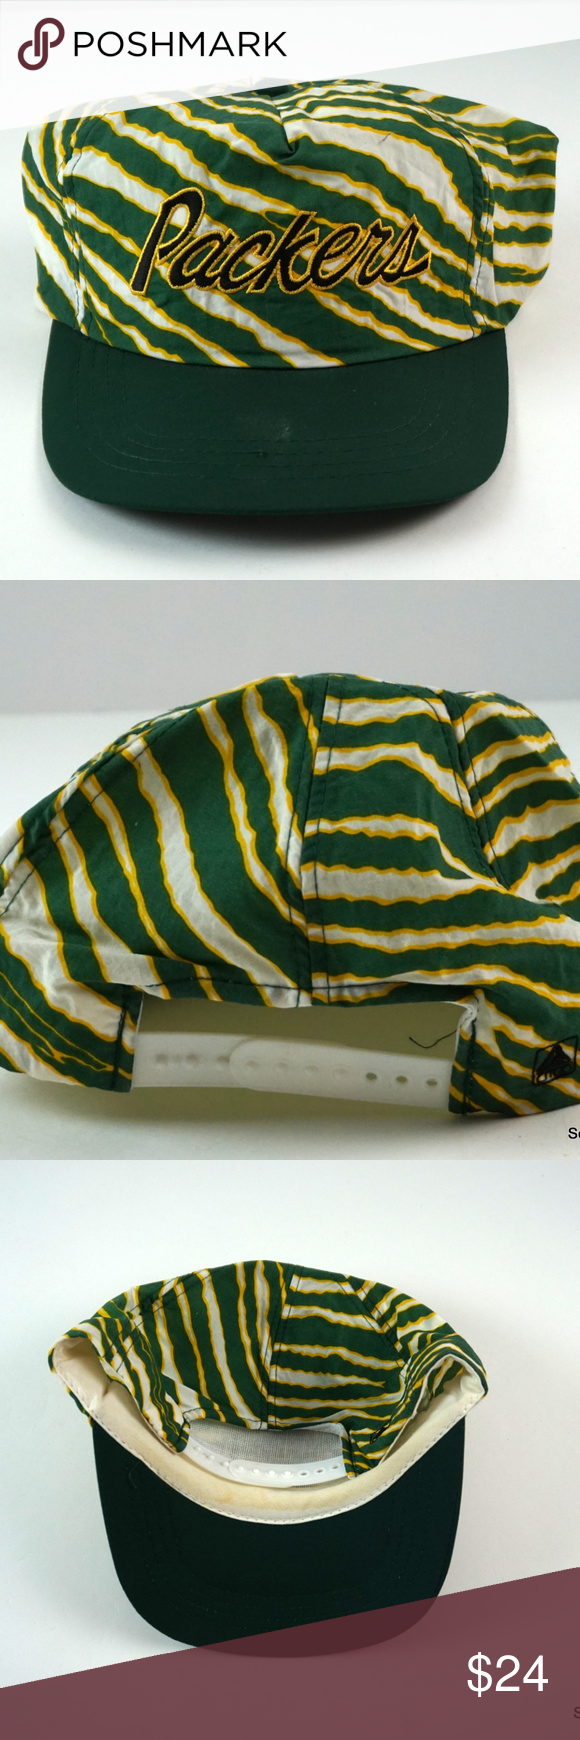 Vintage Nfl Green Bay Packers Snapback Hat Zubaz Vintage Nfl Green Bay Packers Snapback Hat Zubaz Style 90s Fashion Nfl Green Bay Nfl Accessories Snapback Hats